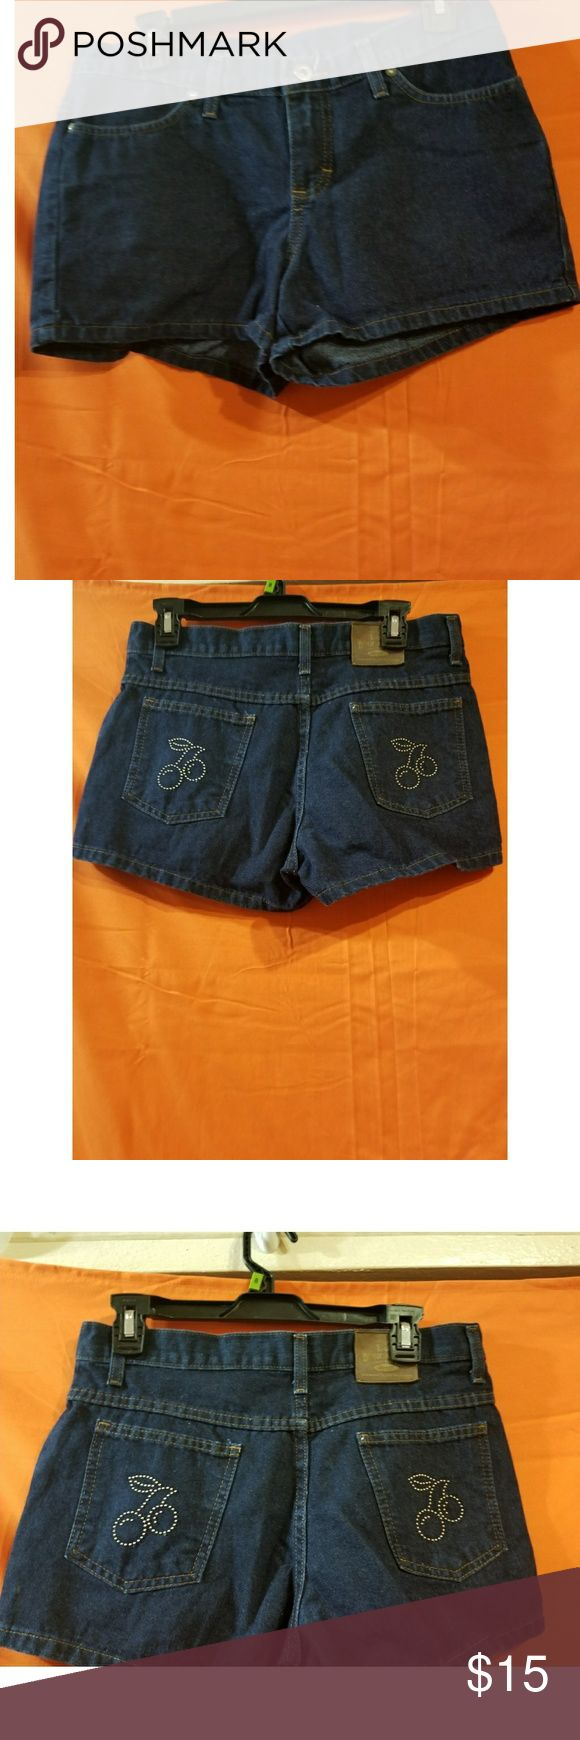 Lee Dungarees Navy Blue Shorts w/cherry Lee Dungarees navy blue  Size 7 Cherry pattern on back short pockets Belt loop shorts  READY to ship today Great used condition #shorts #shopmycloset #shopping #chic #summer #instachic #fashionista #vacation #lee #dungarees #shorts #cherry #cherries #denim #jeans Lee Shorts Jean Shorts